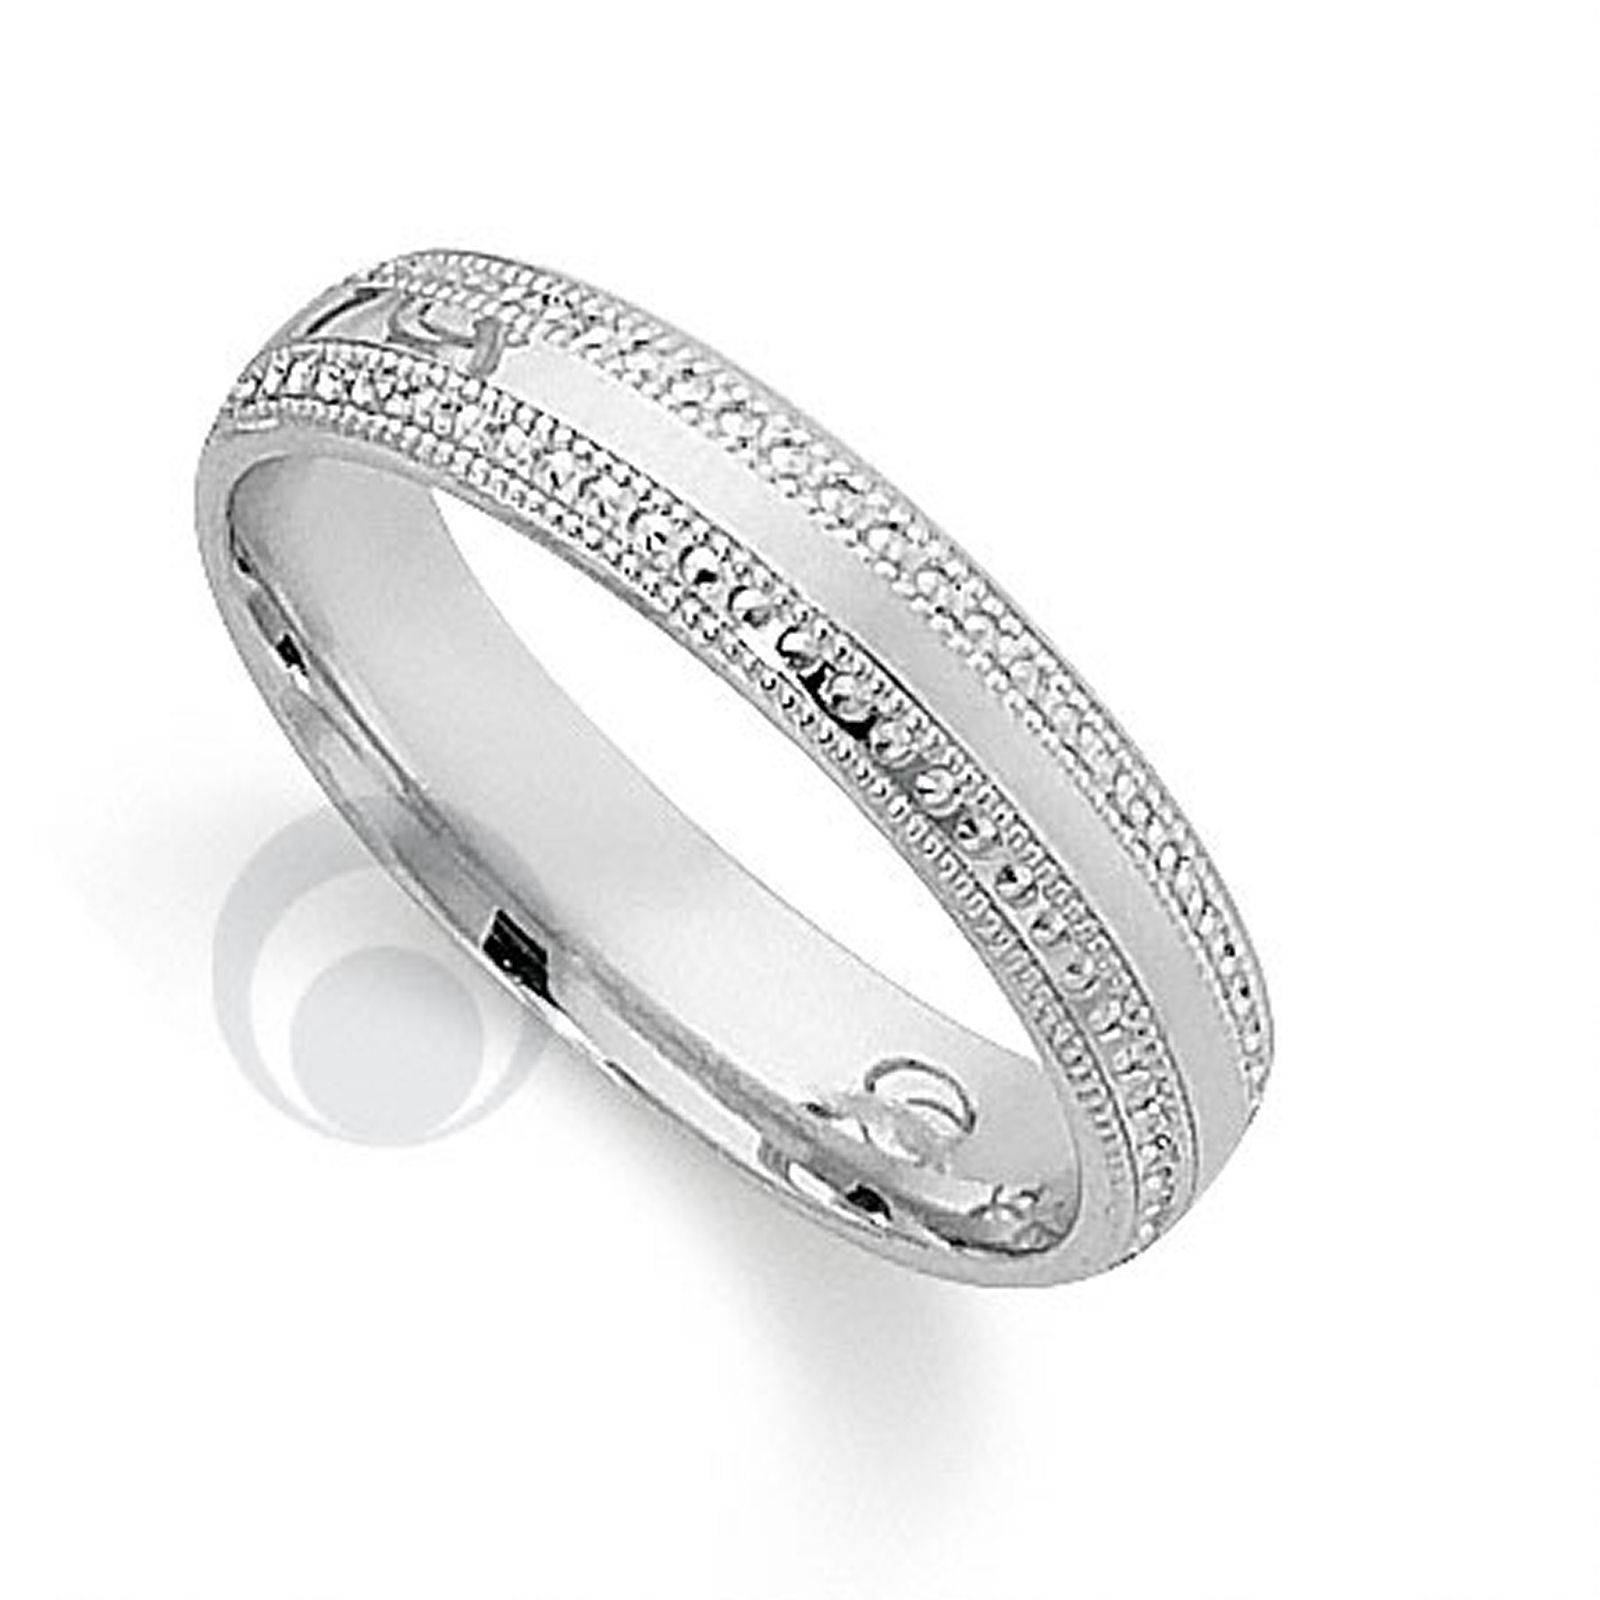 Pretty Patterened Platinum Wedding Ring From The Platinum Ring With Best And Newest Platium Wedding Bands (View 14 of 15)